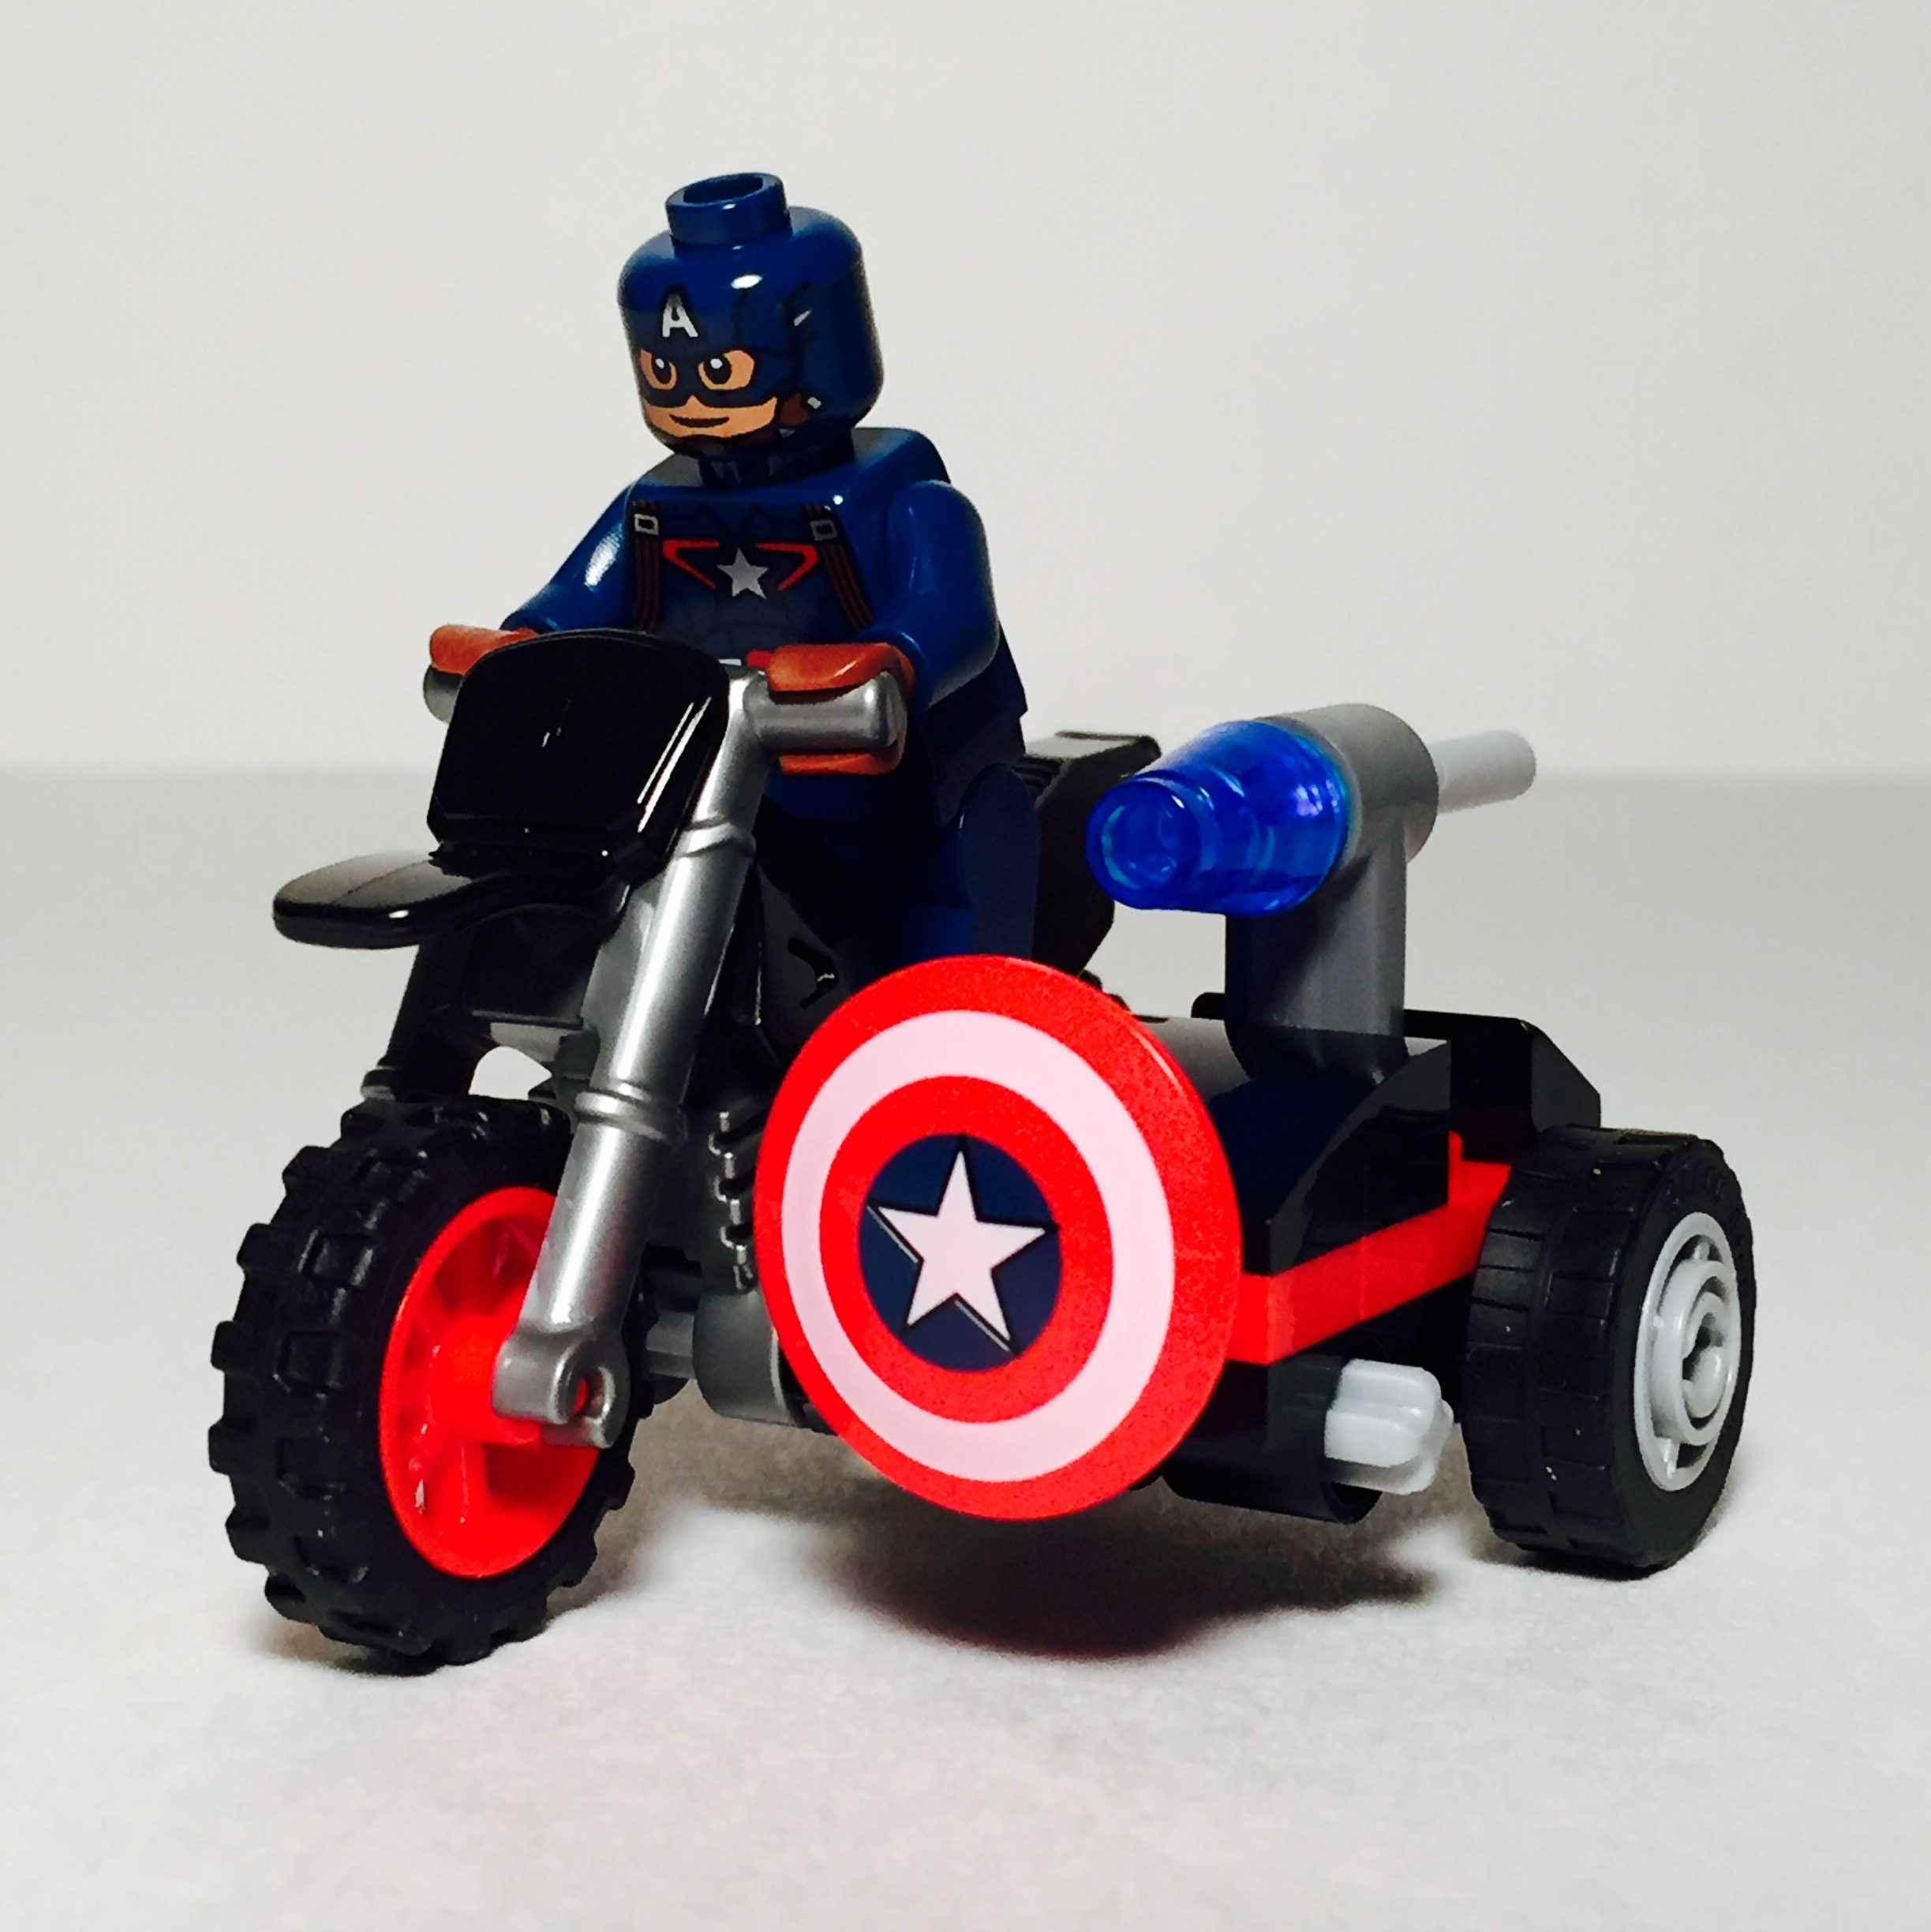 LEGO Marvel Super Heroes Captain America minifigure /& Motorcycle new